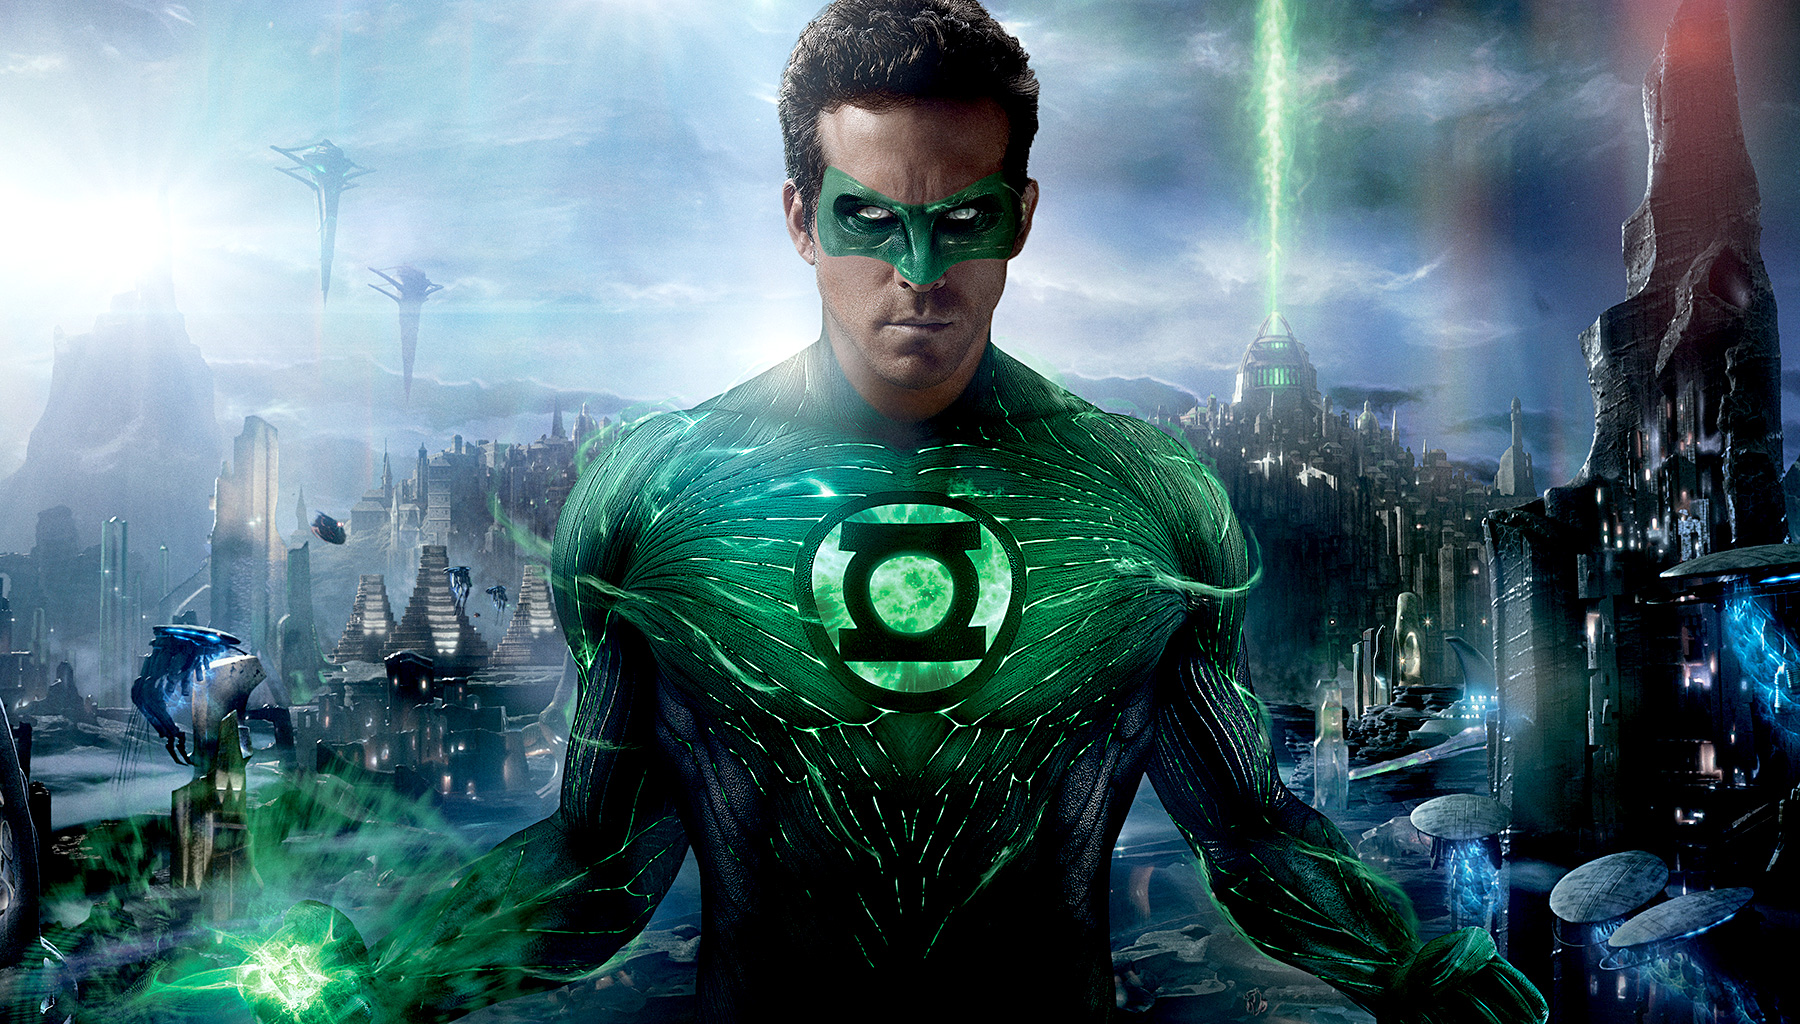 In brightest day, in blackest night...